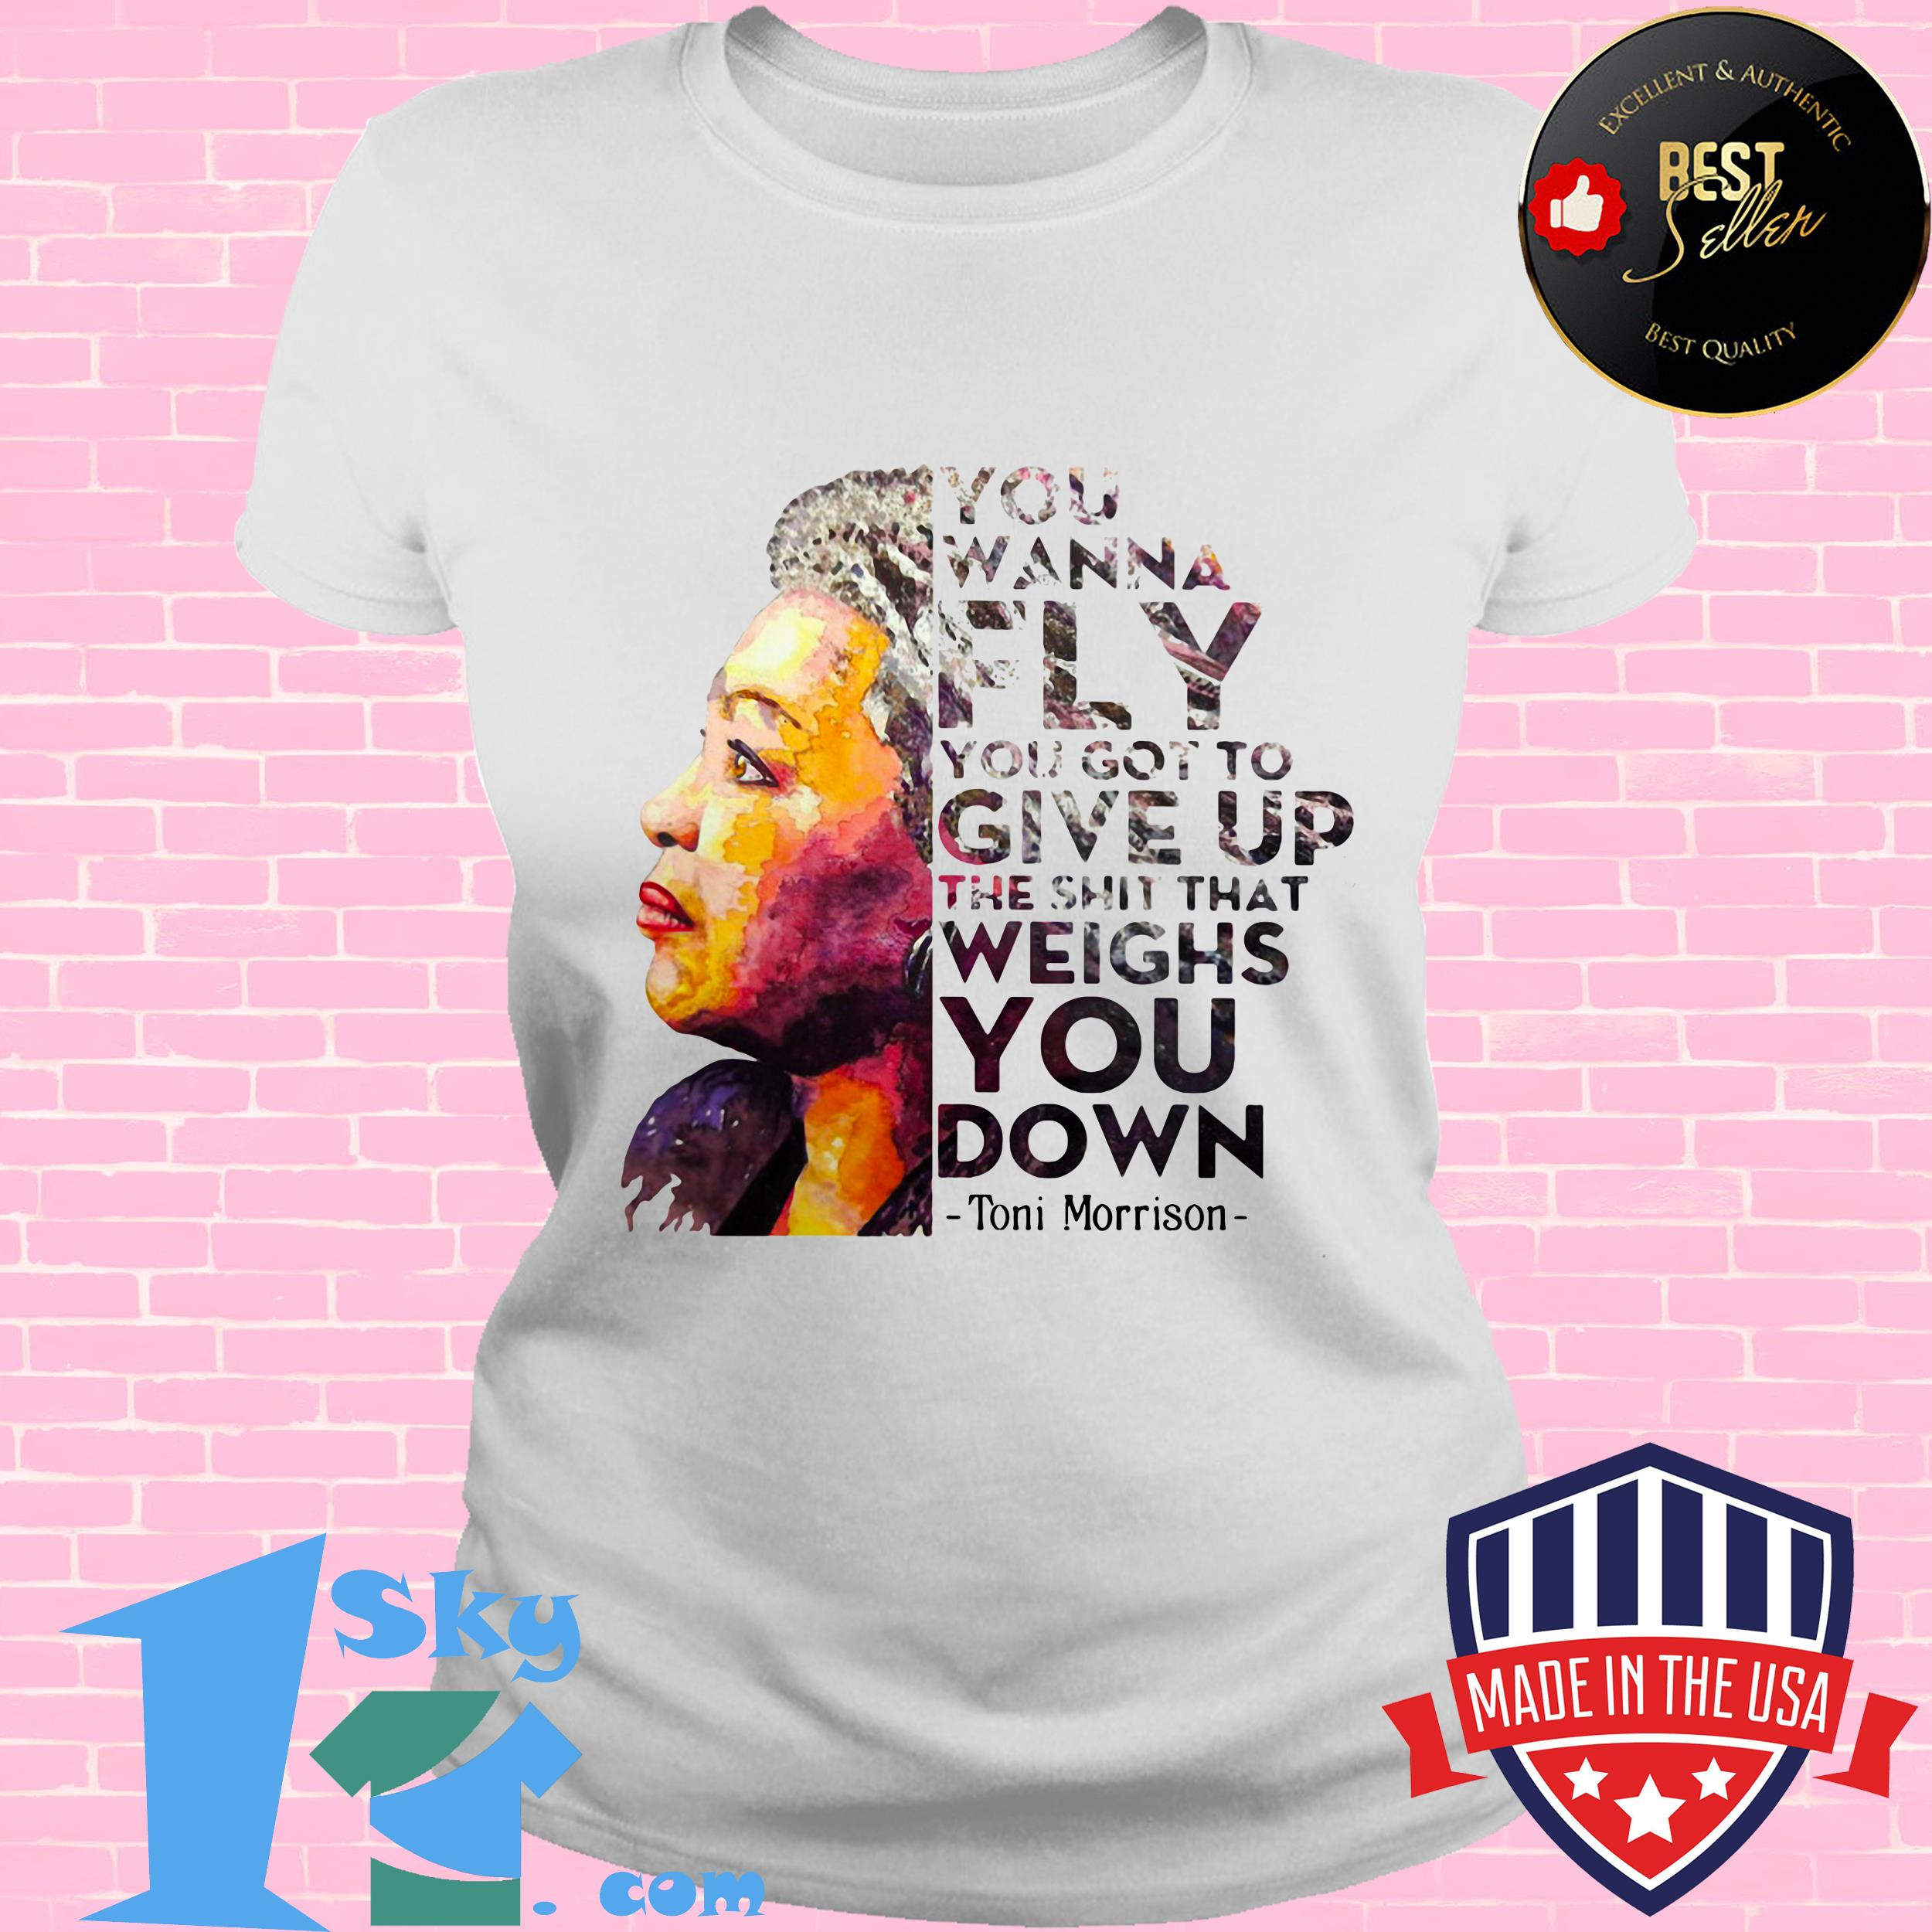 you wanna fly you got to give up the shit that weighs you down toni morrison ladies tee - You Wanna Fly You Got to Give Up the Shit That Weighs You Down Toni Morrison shirt